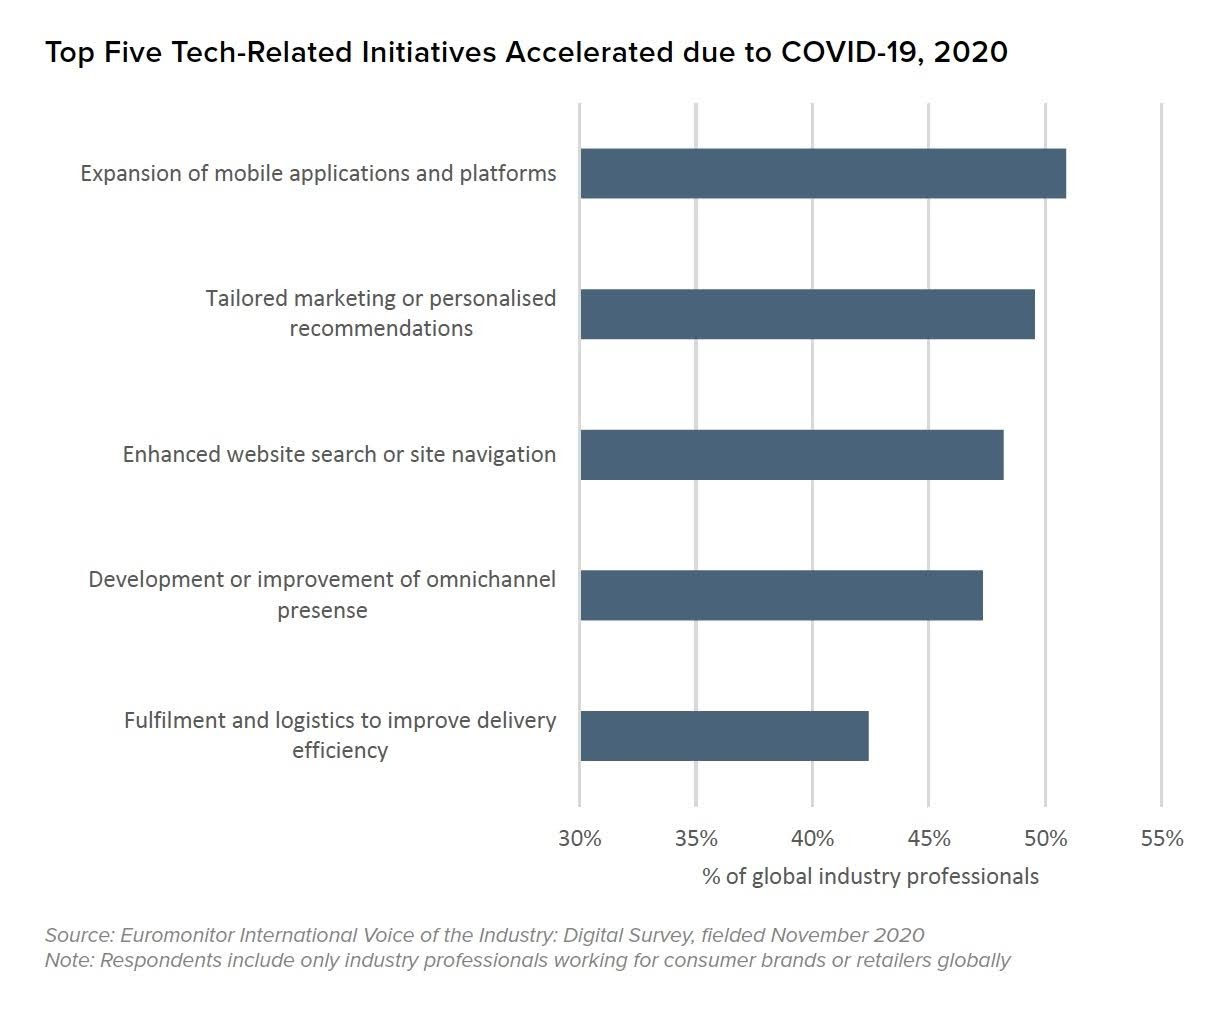 Top Five Tech-Related Initiatives Accelerated due to COVID-19, 2020. Source: Euromonitor International Voice of the Industry: Digital Survey, fielded November 2020. Note: Respondents include only industry professionals working for consumer brands or retailer